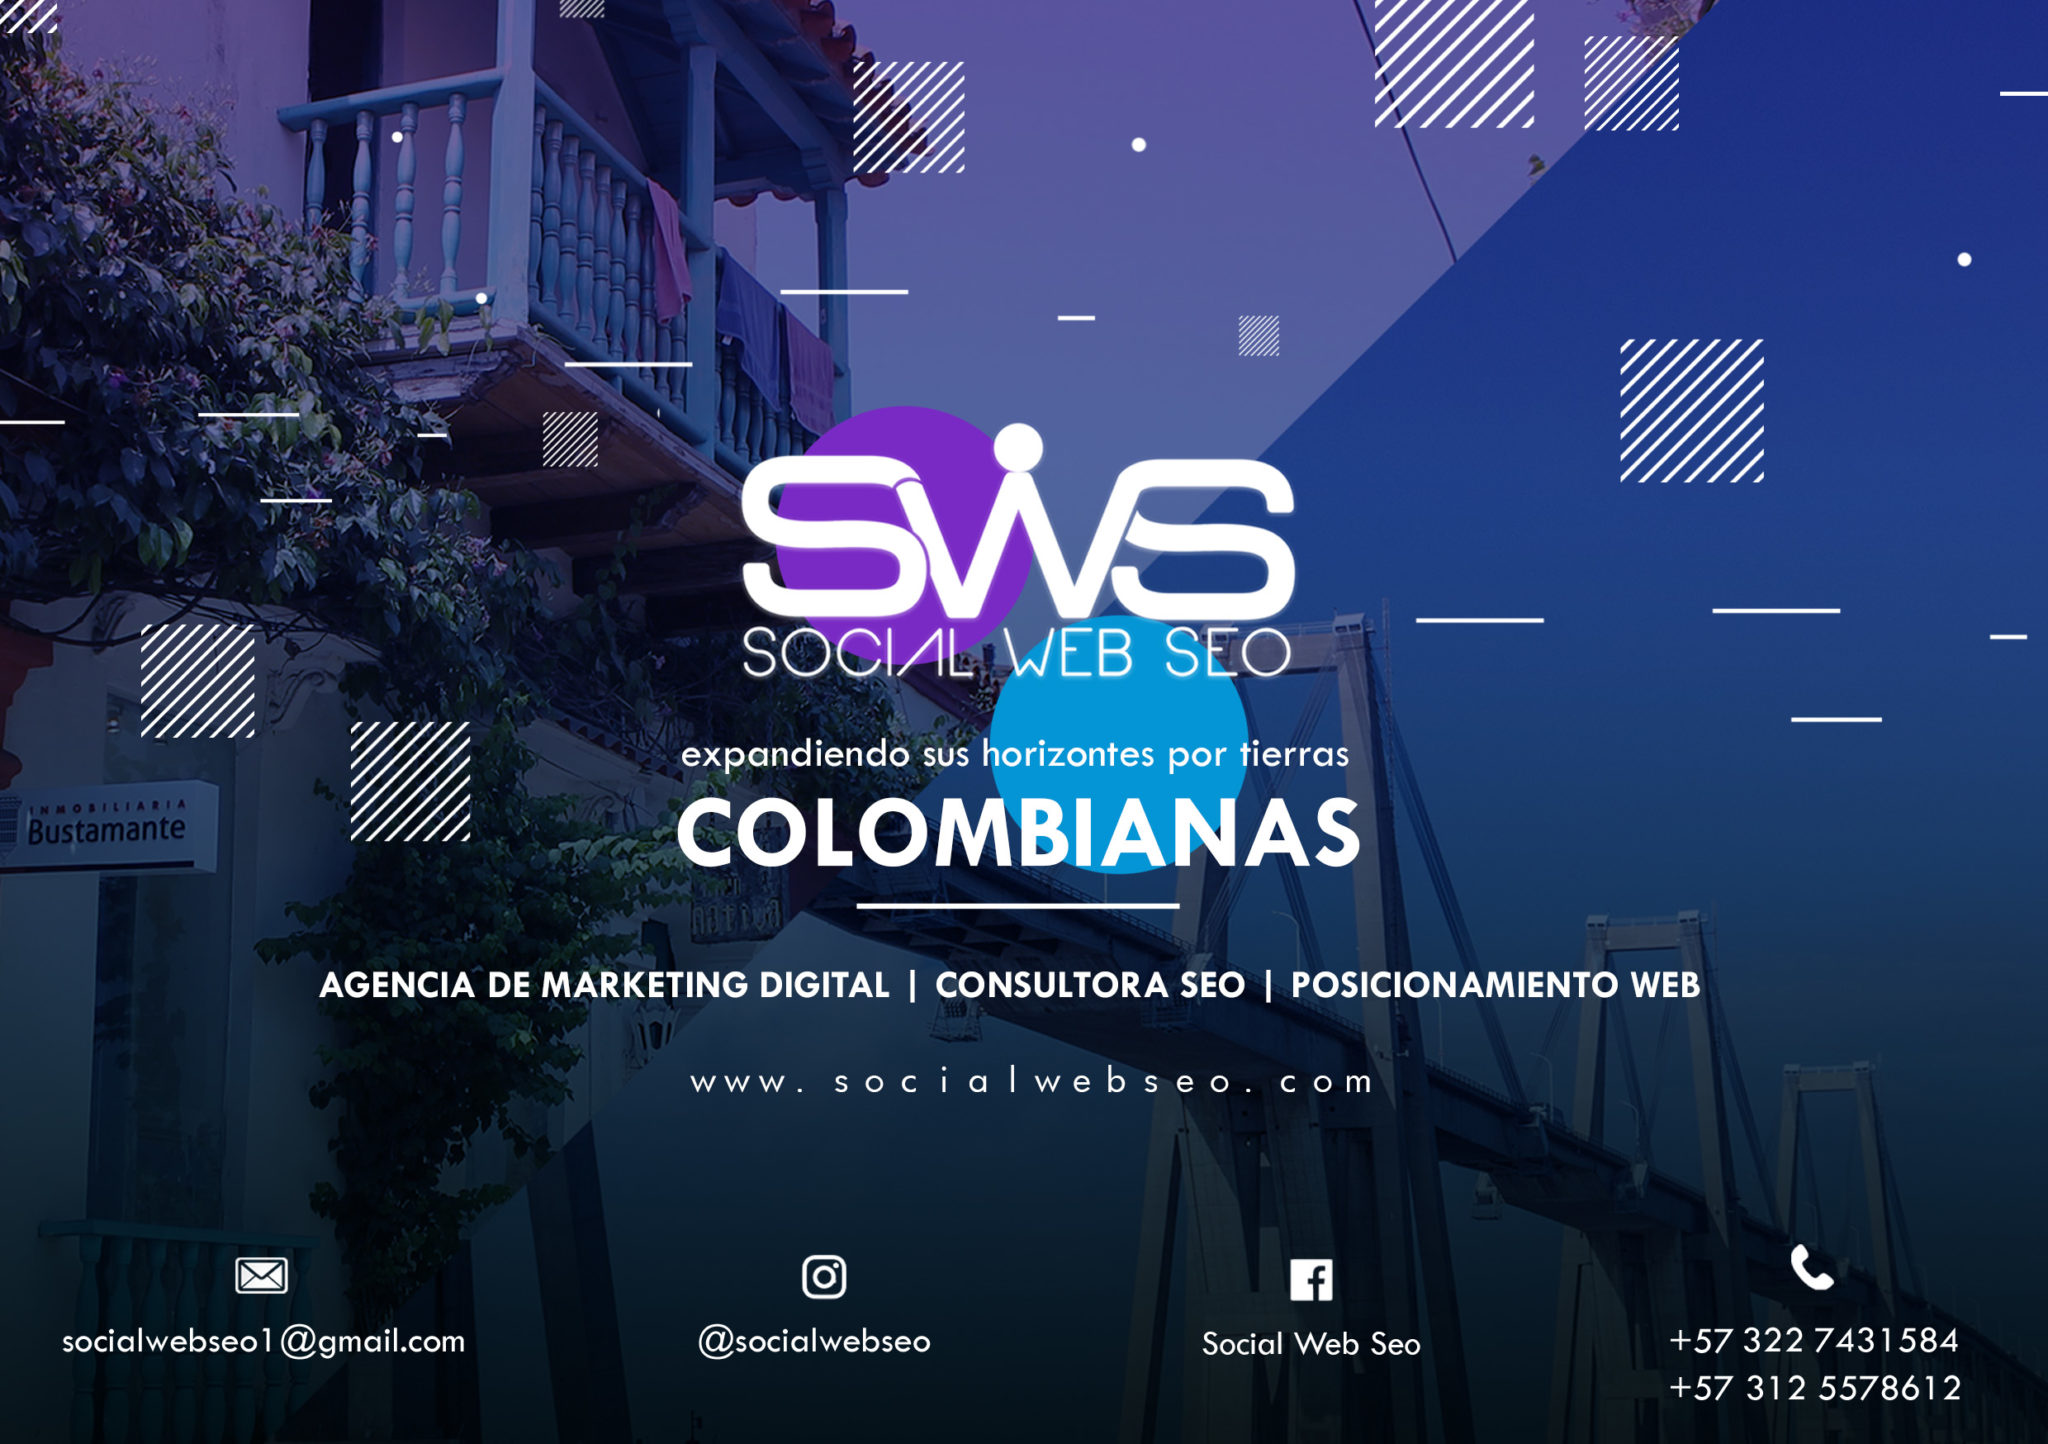 Agencia Marketing Digital - Consultora SEO - Posicionamiento Web - Colombia y Venezuela - Social Web SEO